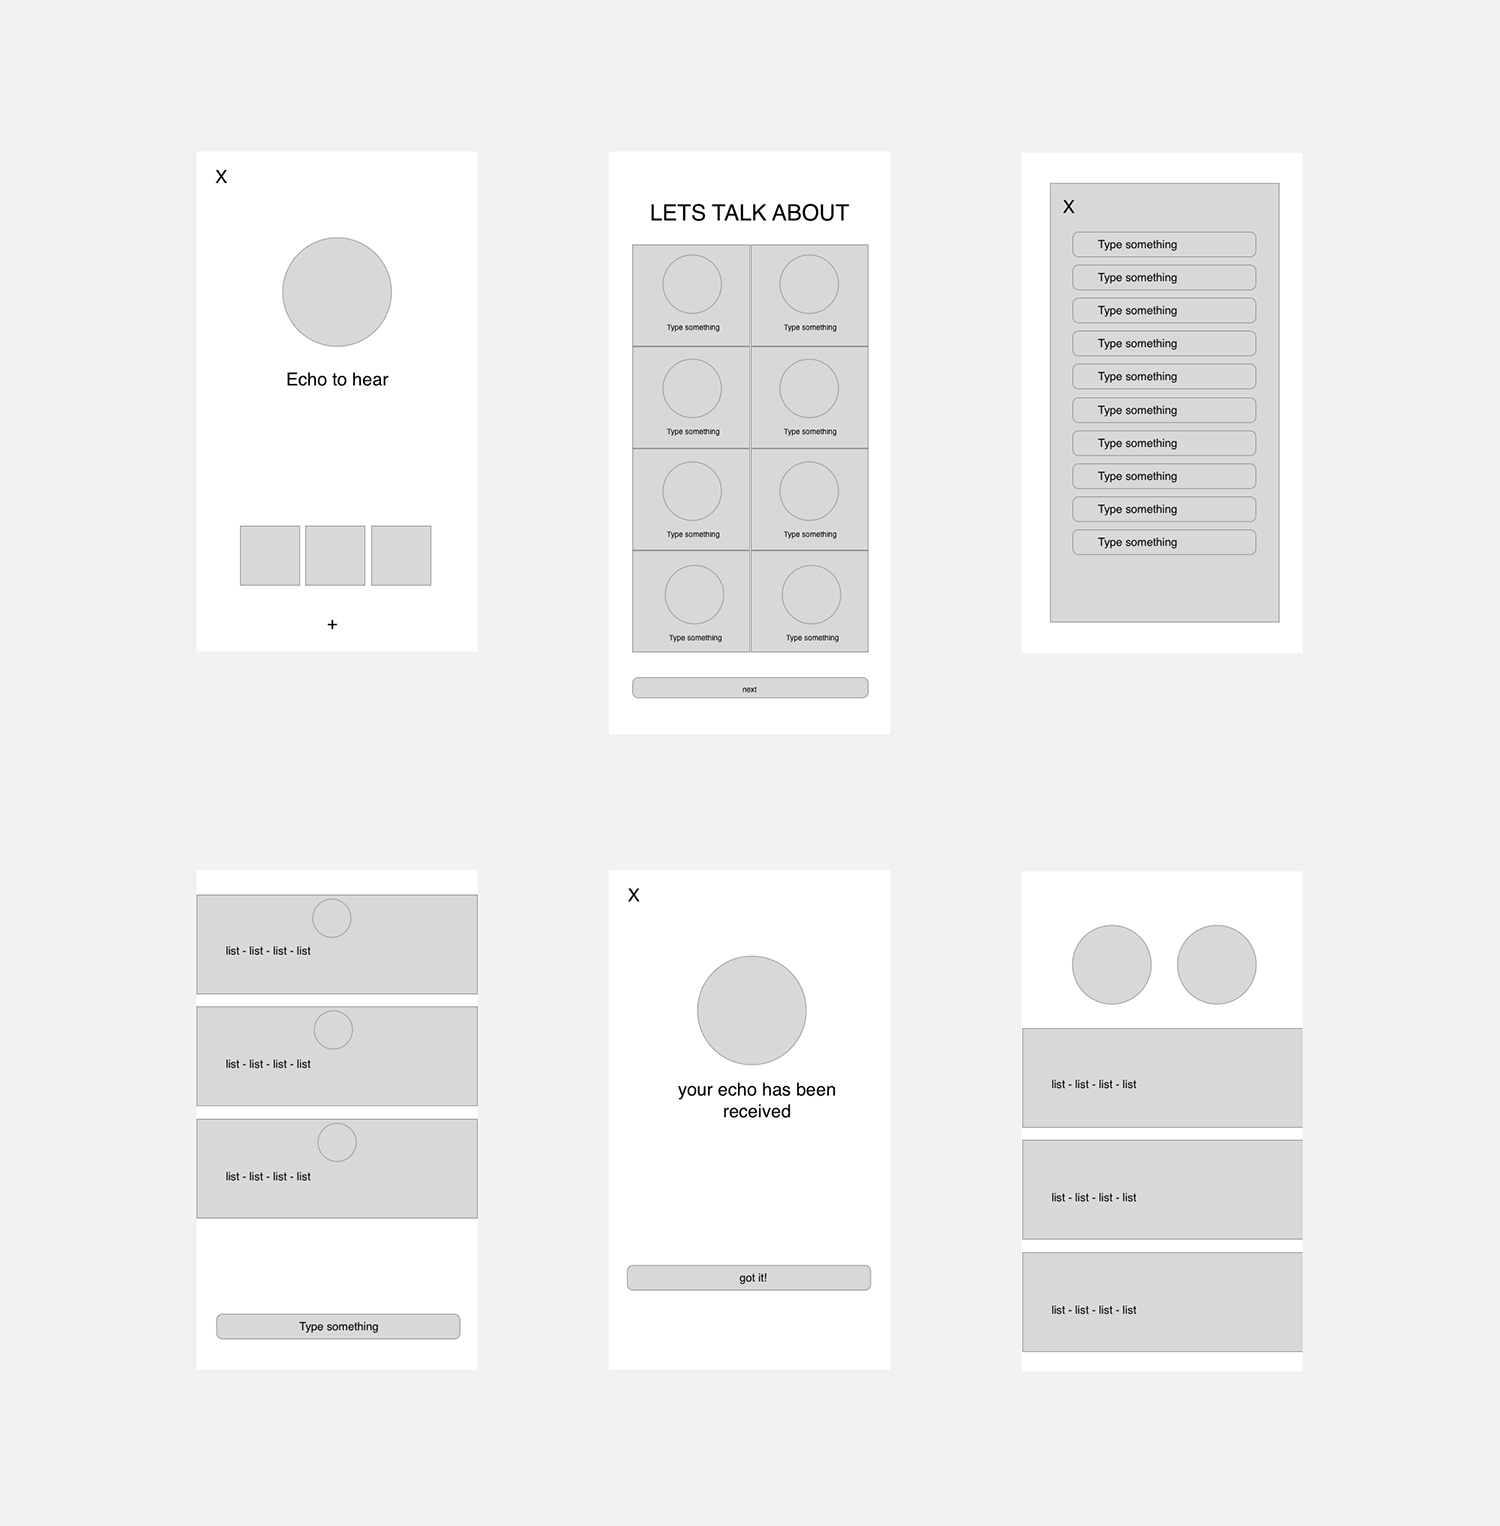 Rough wireframes of the application